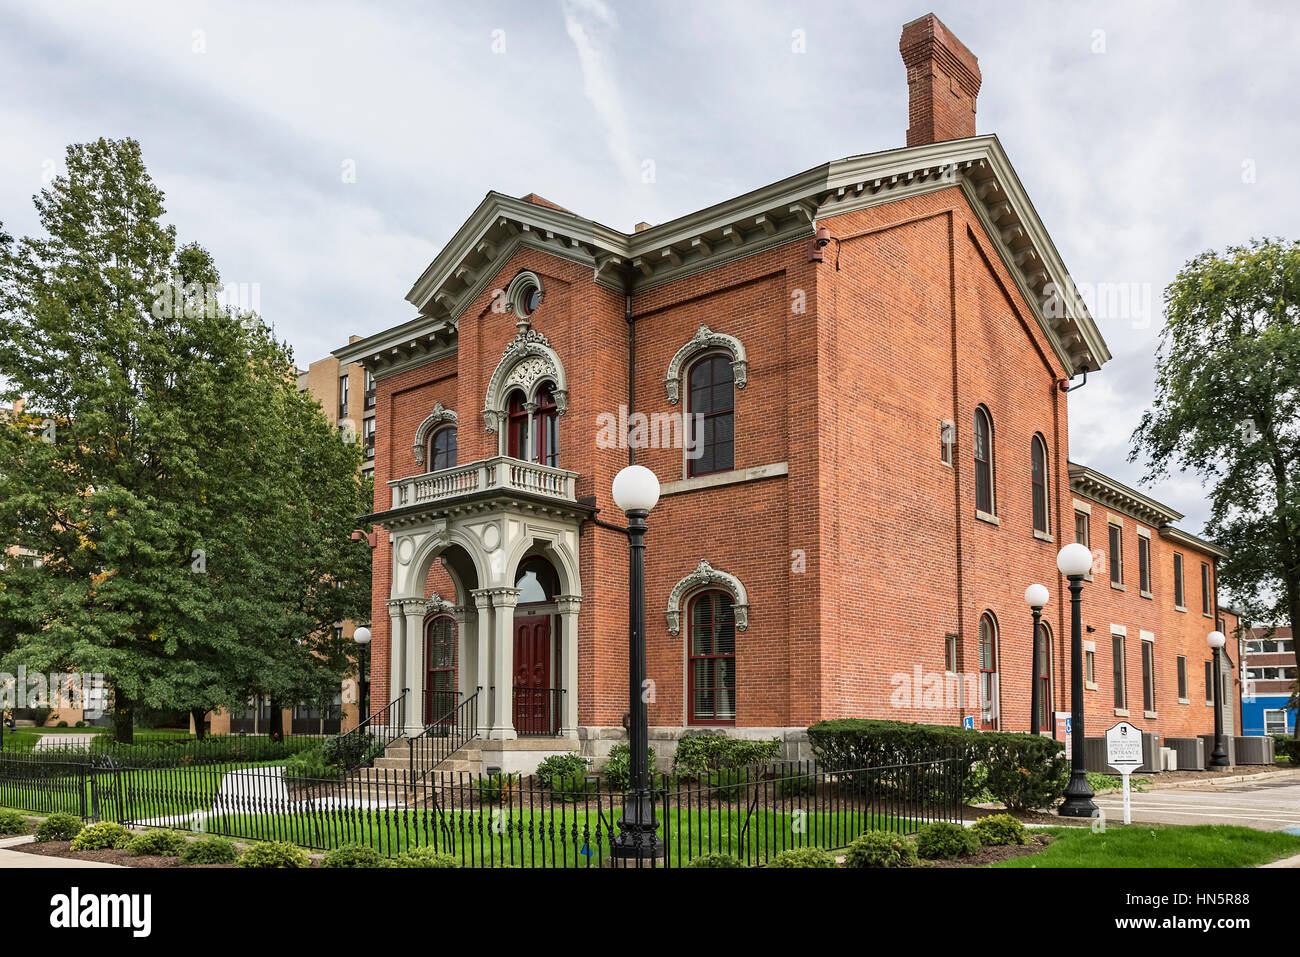 Historic Gideon Ball house, Erie, Pennsylvania, USA. - Stock Image